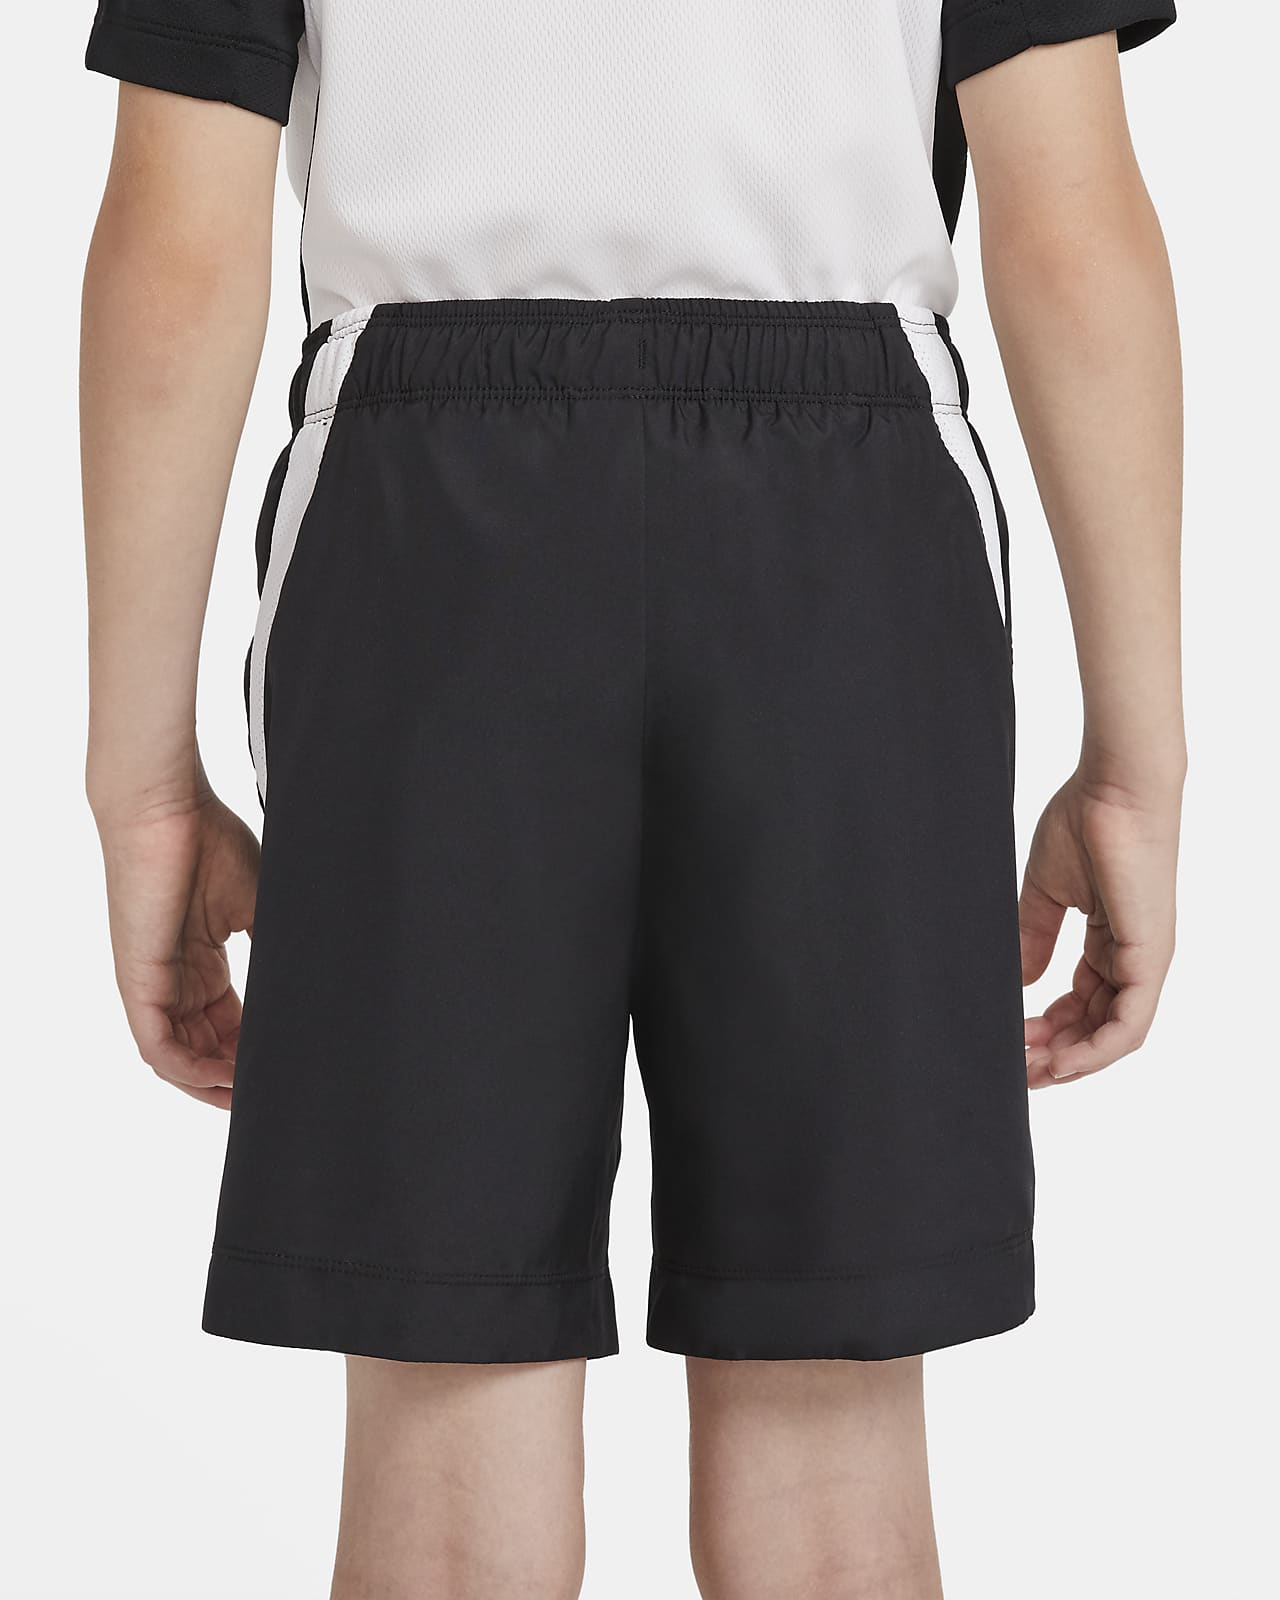 Nike Older Kids' (Boys') Training Shorts. Nike FI